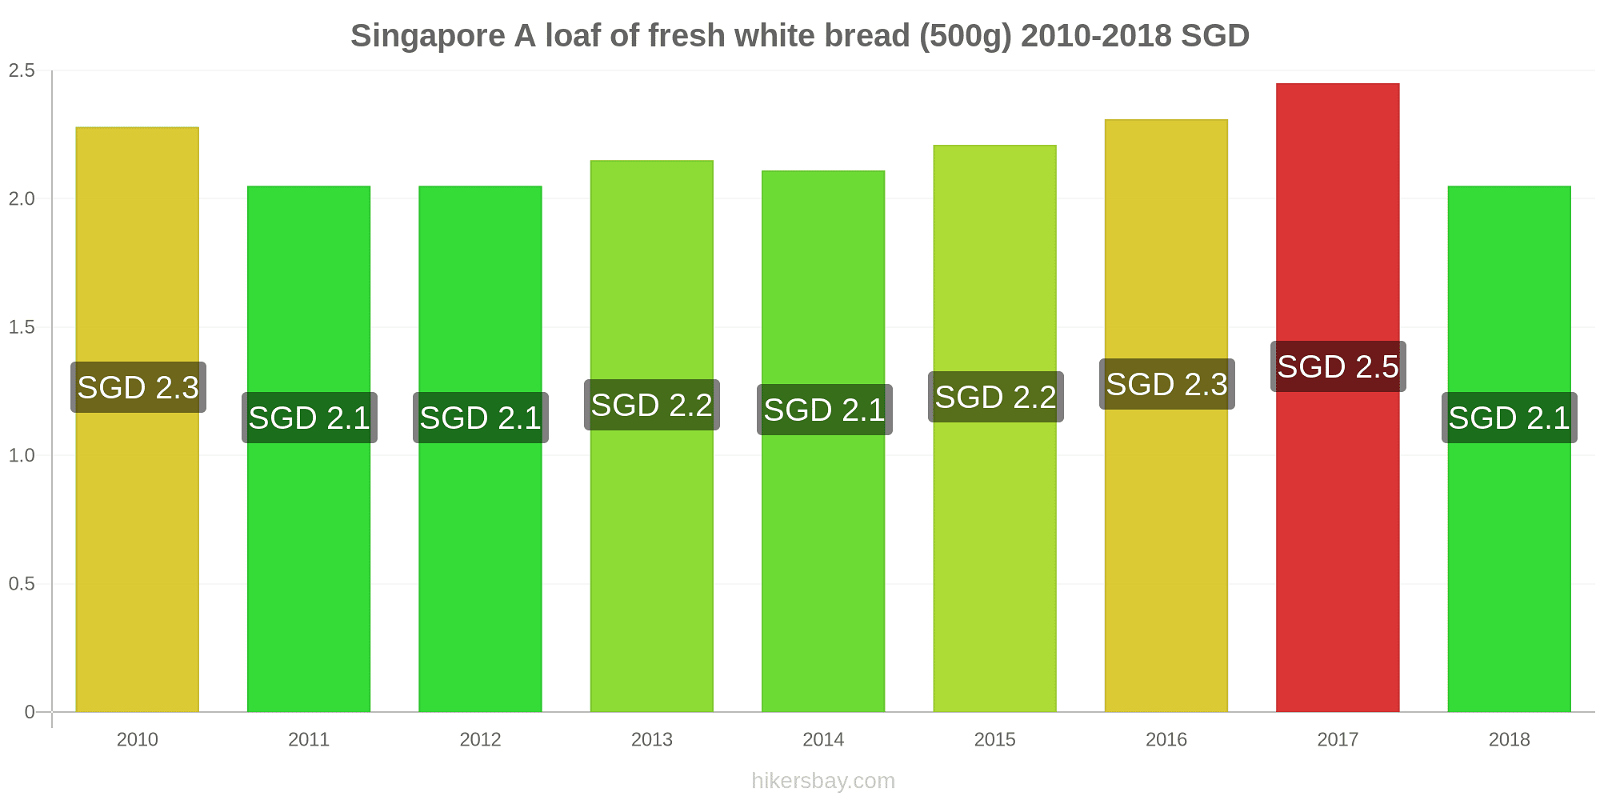 Singapore price changes A loaf of fresh white bread (500g) hikersbay.com